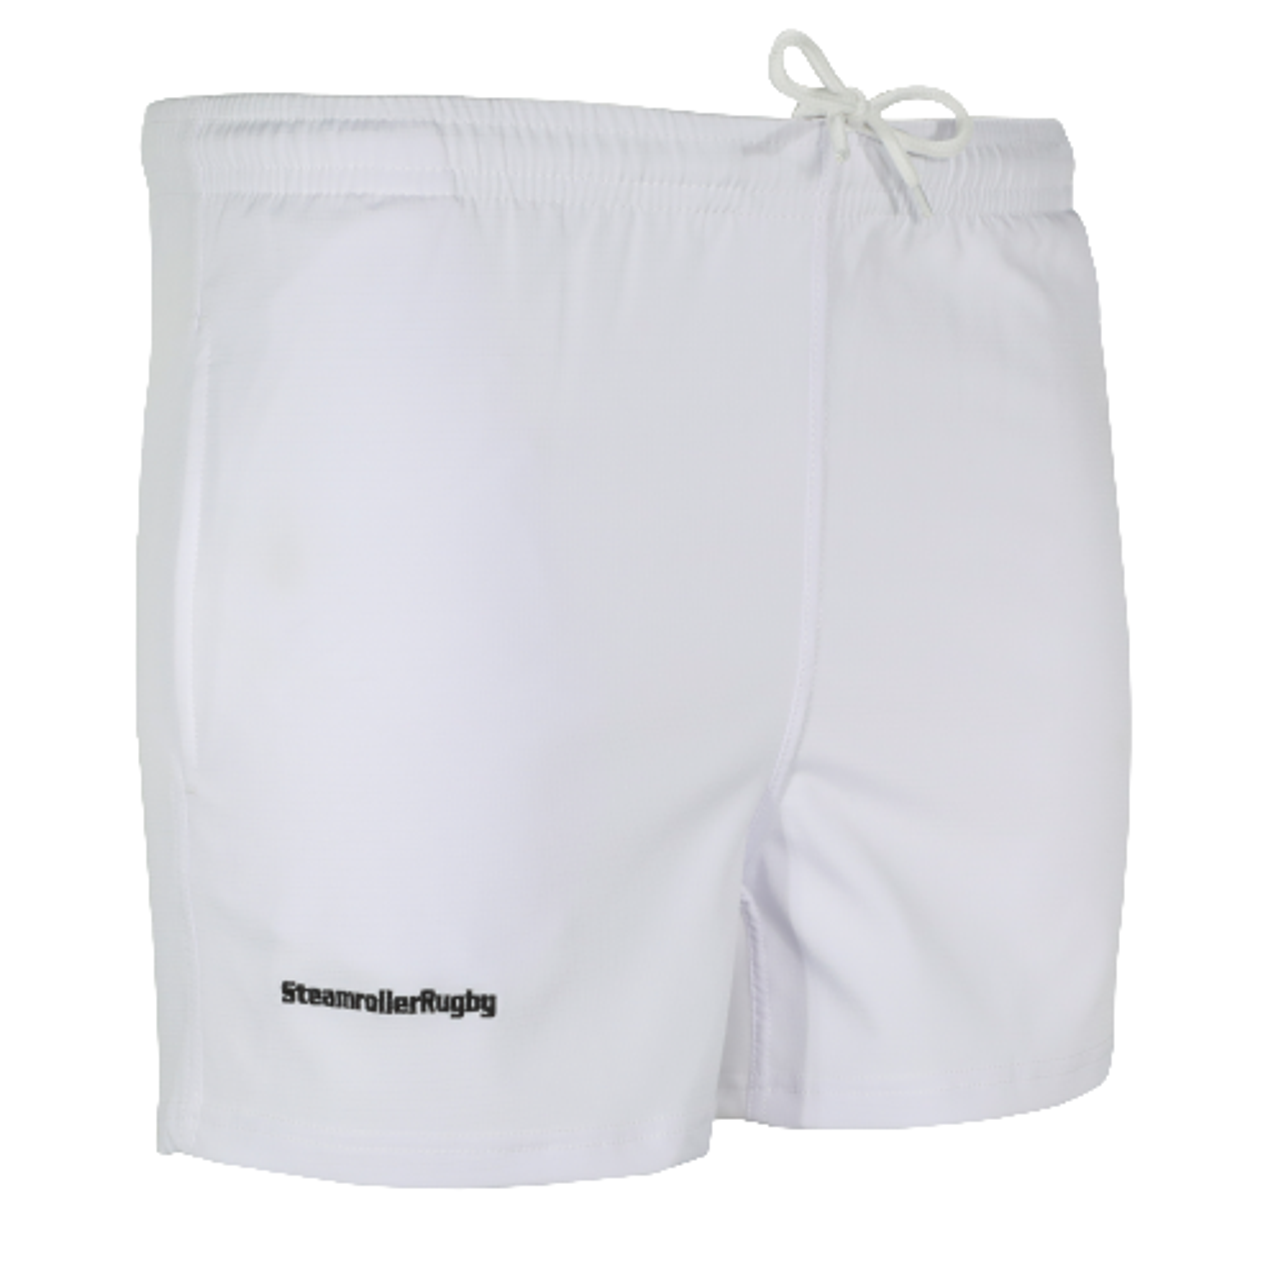 MB Rugby SRS Pocketed Performance Shorts